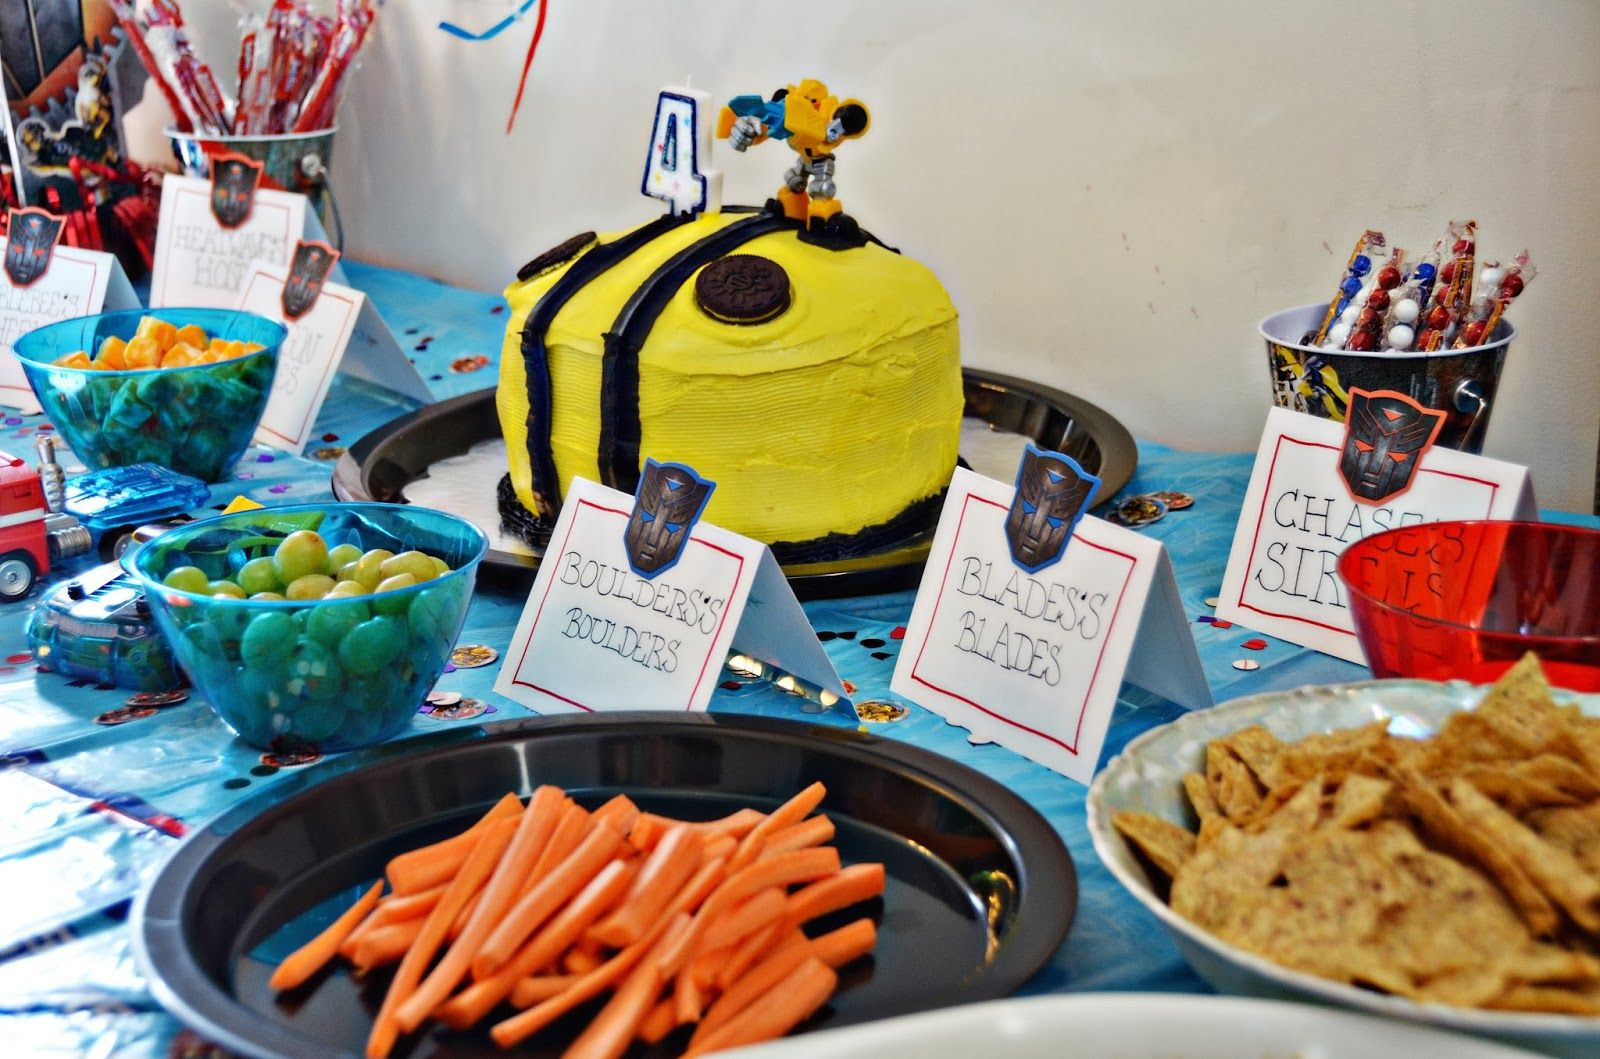 Best ideas about Rescue Bots Birthday Party . Save or Pin Rescue Bot Birthday Party Ideas Now.